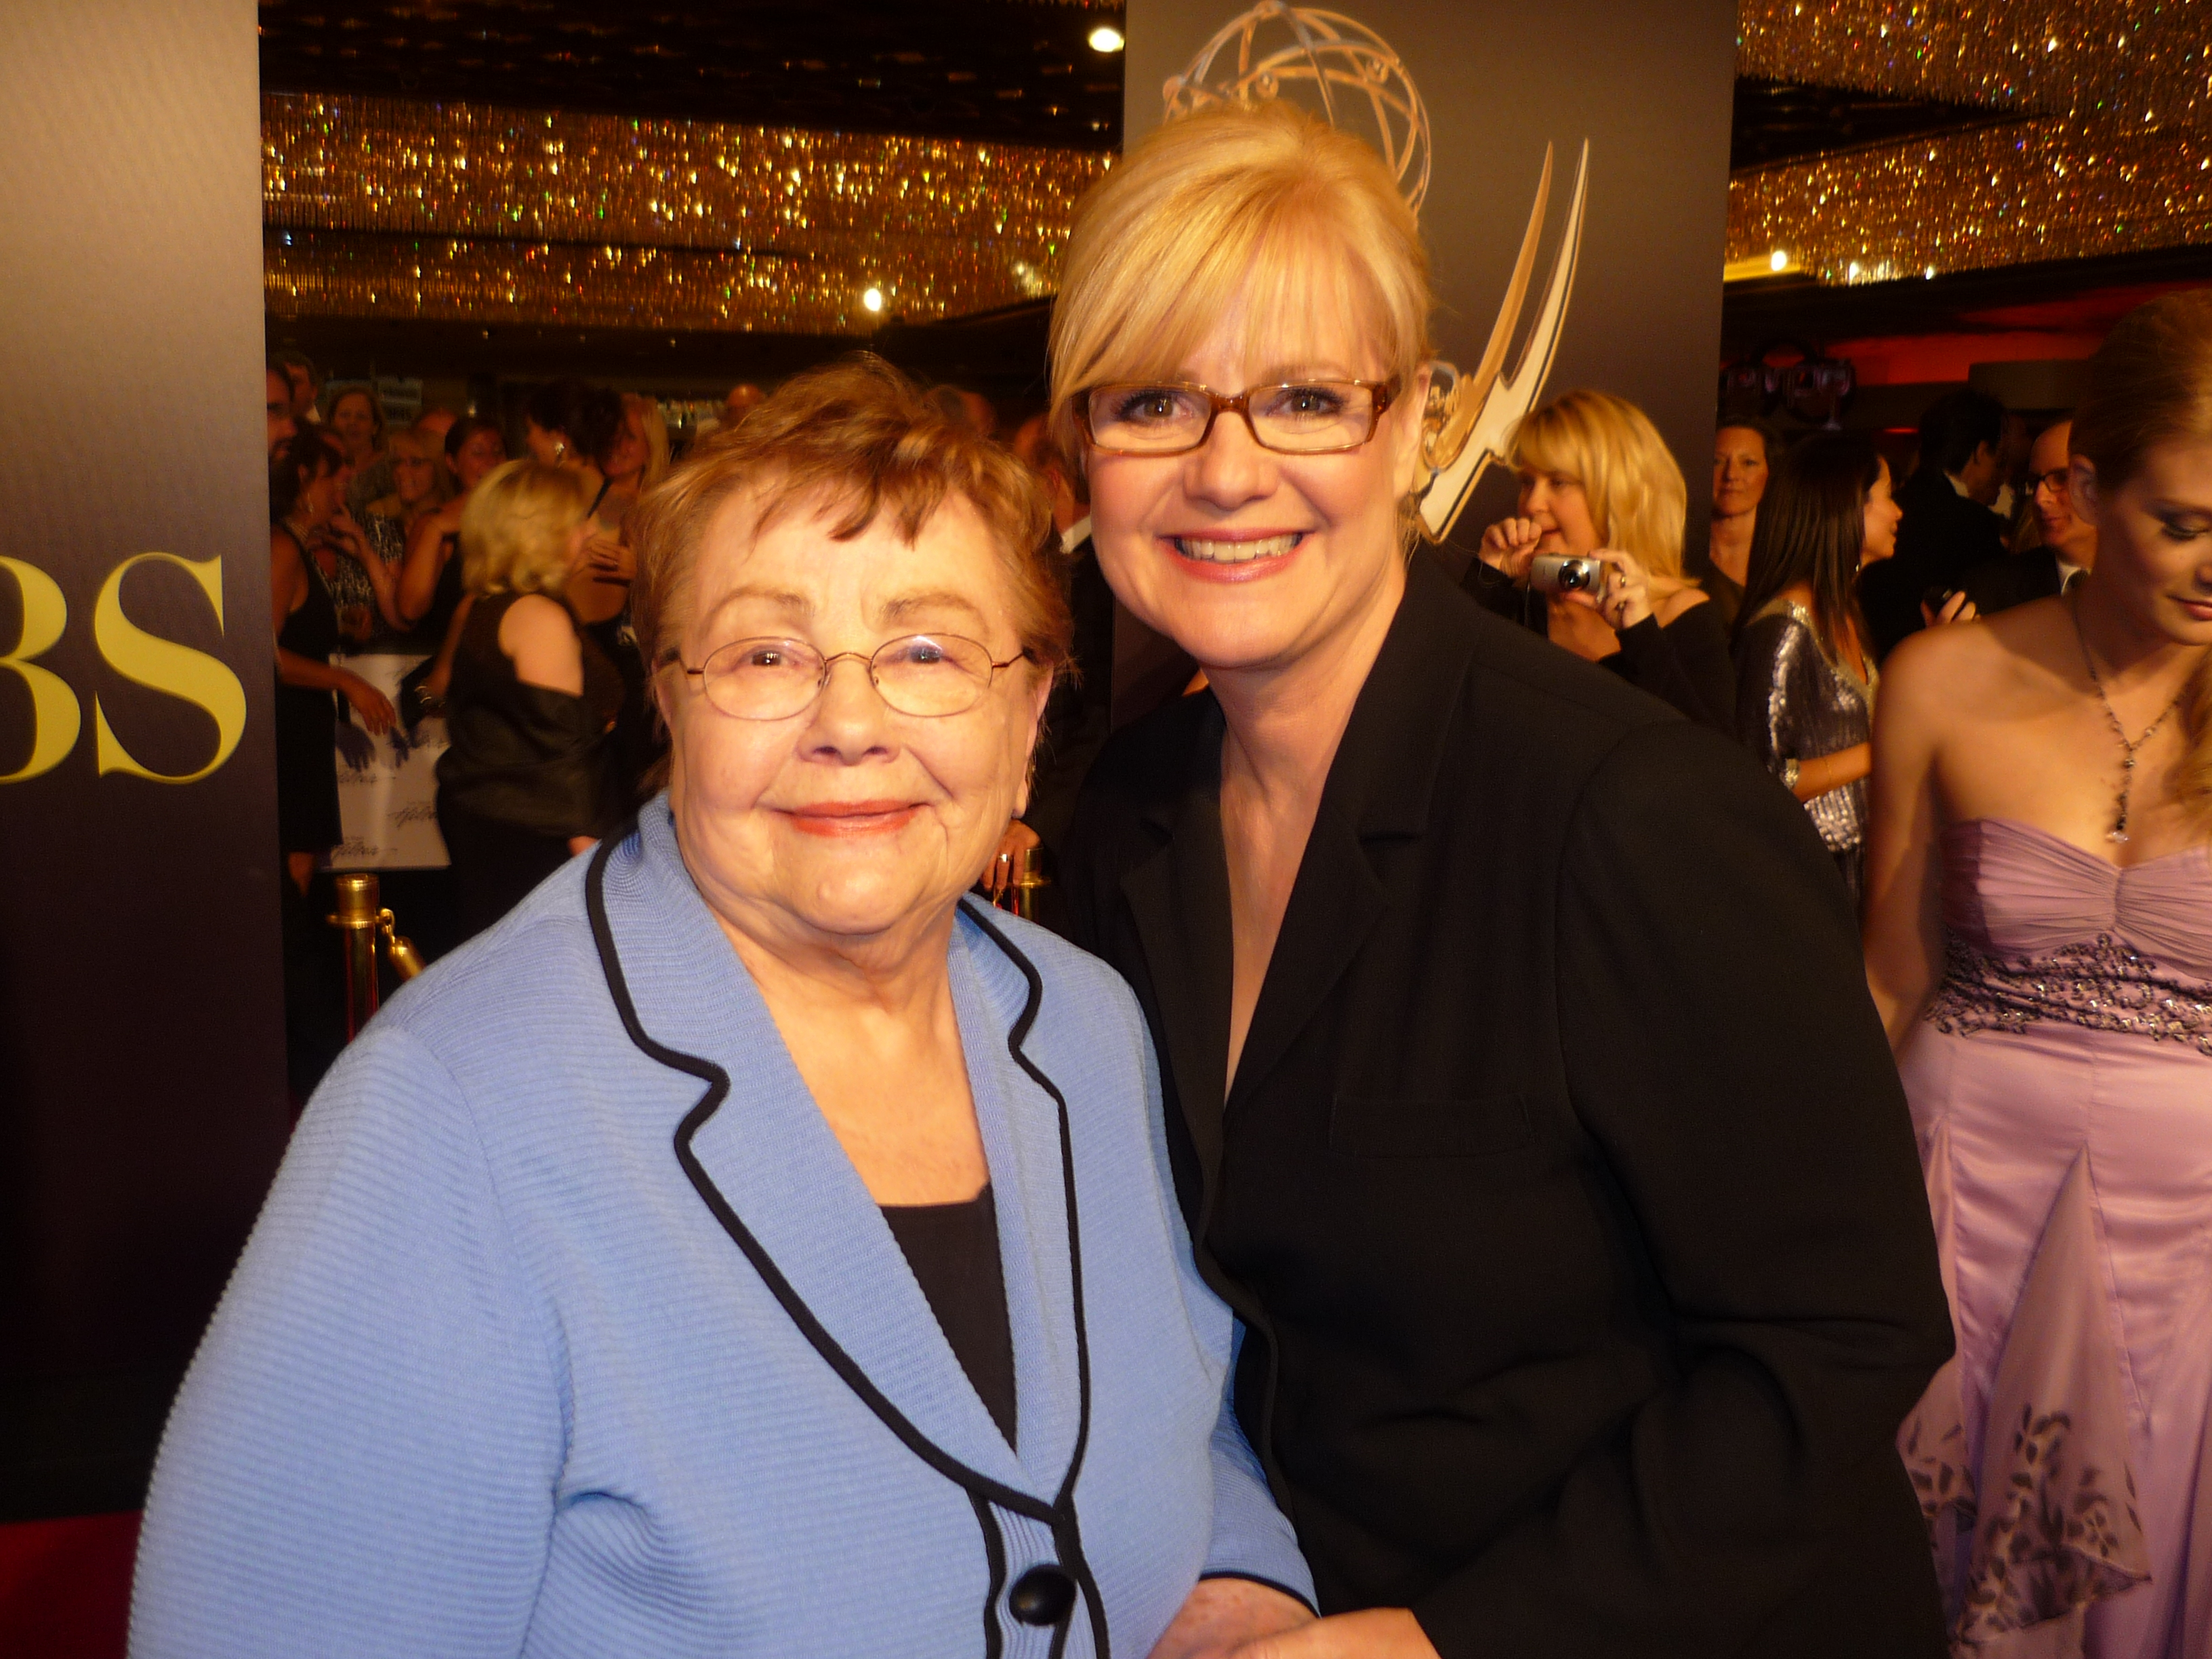 Photo of Bonnie Hunt & her friend